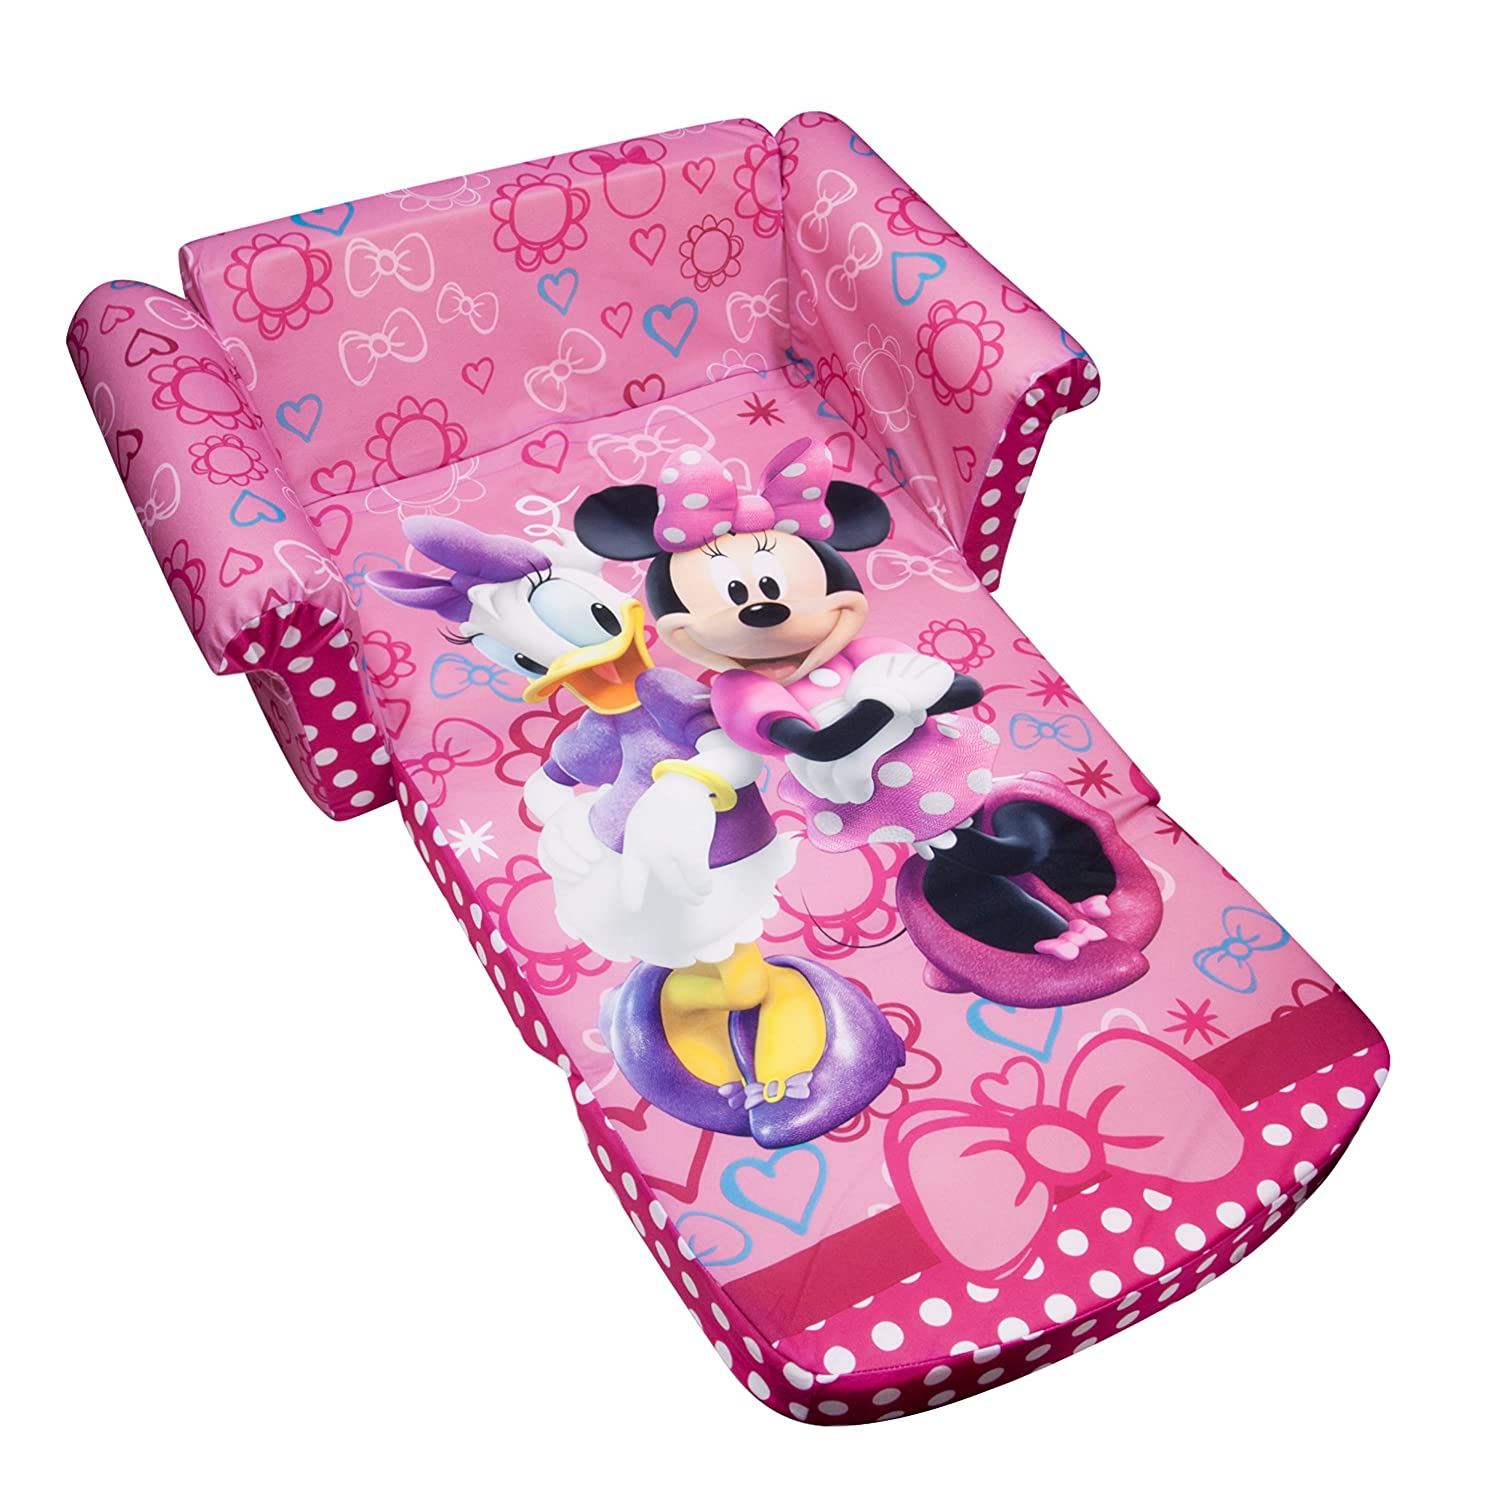 Marshmallow Furniture, Children's 2 in 1 Flip Open Foam Sofa, Disney Minnie's Bow-tique, by Spin Master